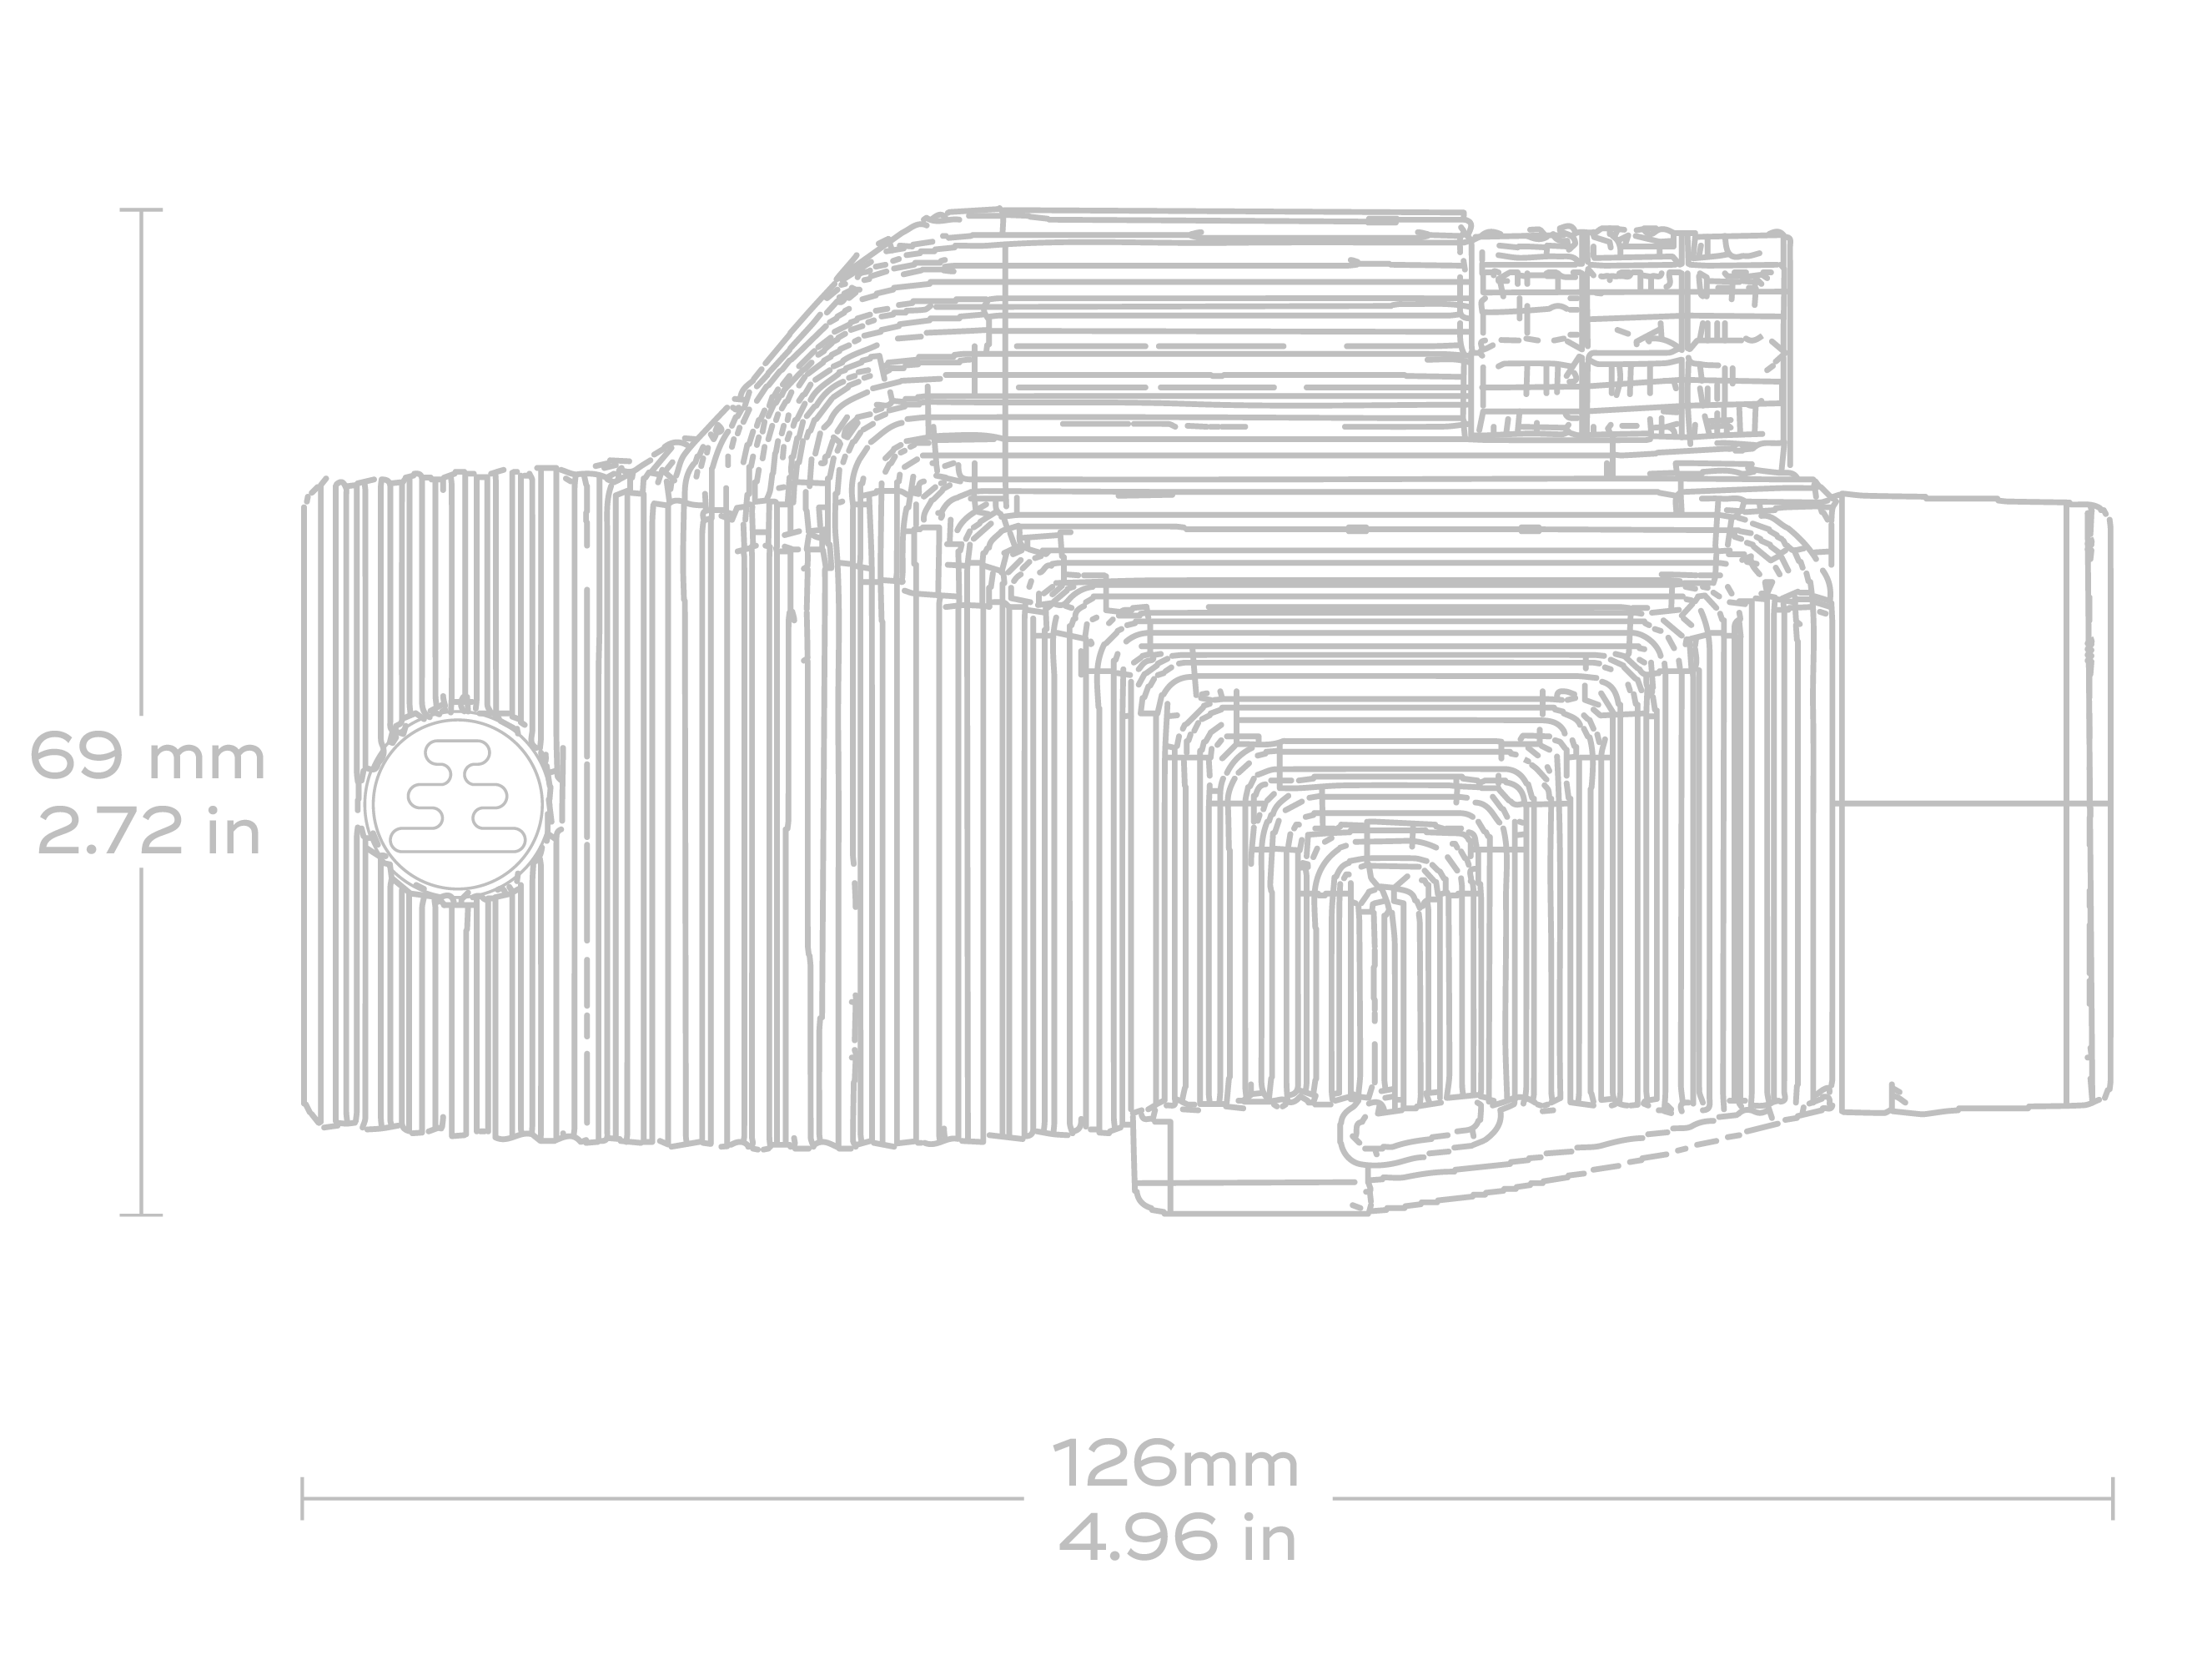 Technical wireframe rendering of Nocs binoculars from above